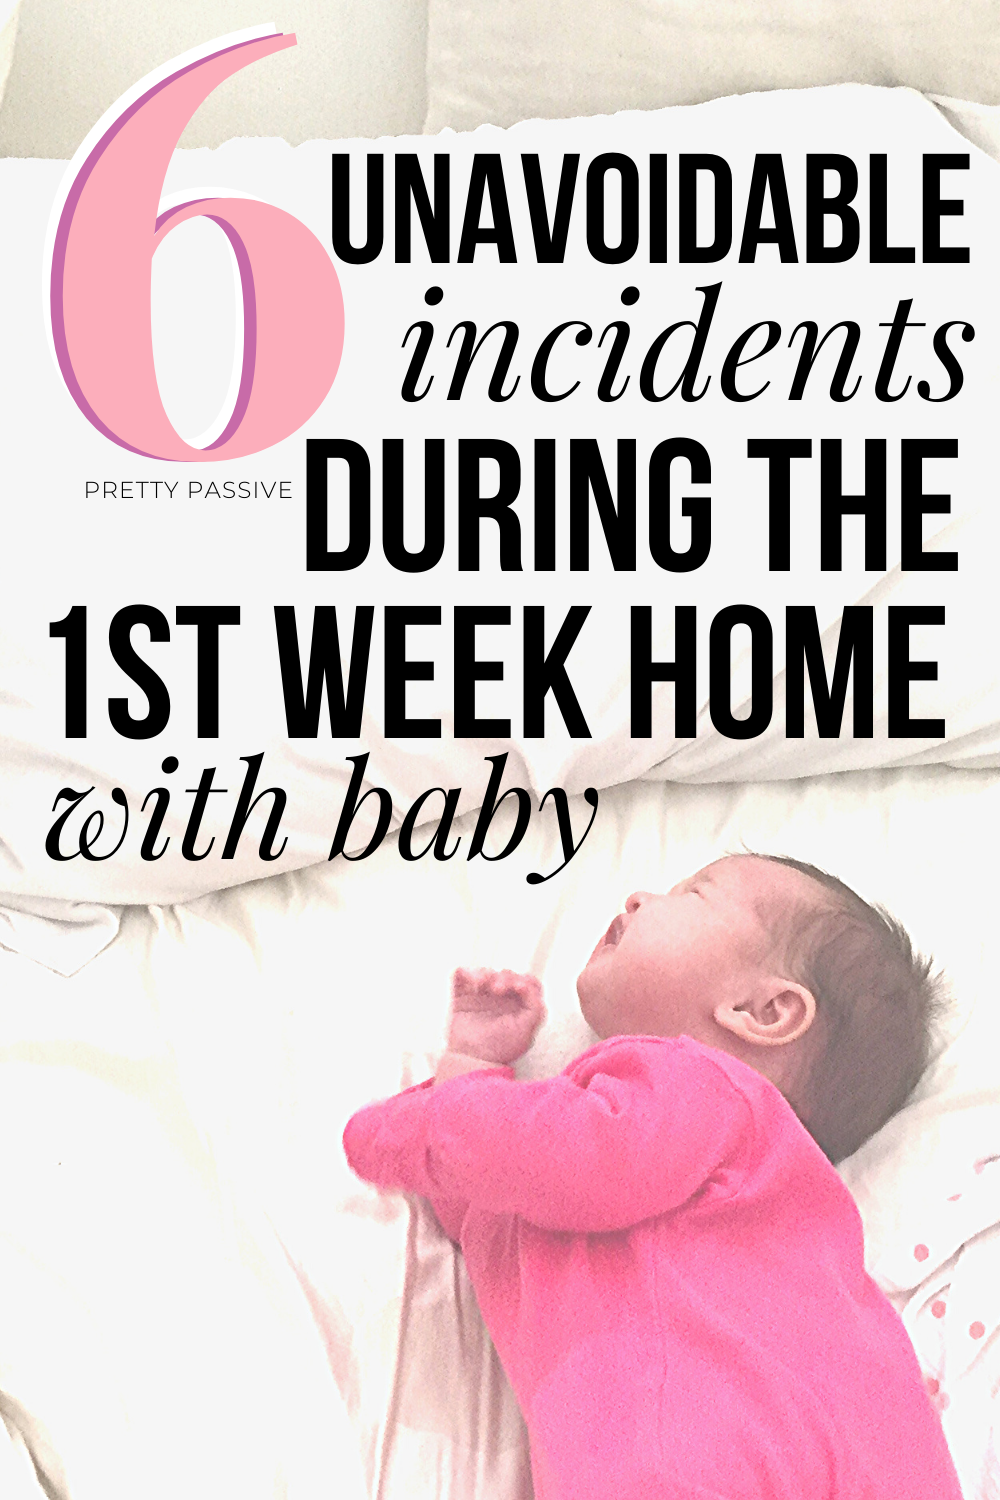 newborn baby hacks for moms - the shocking and unexpected things you should expect from the first week home with a baby